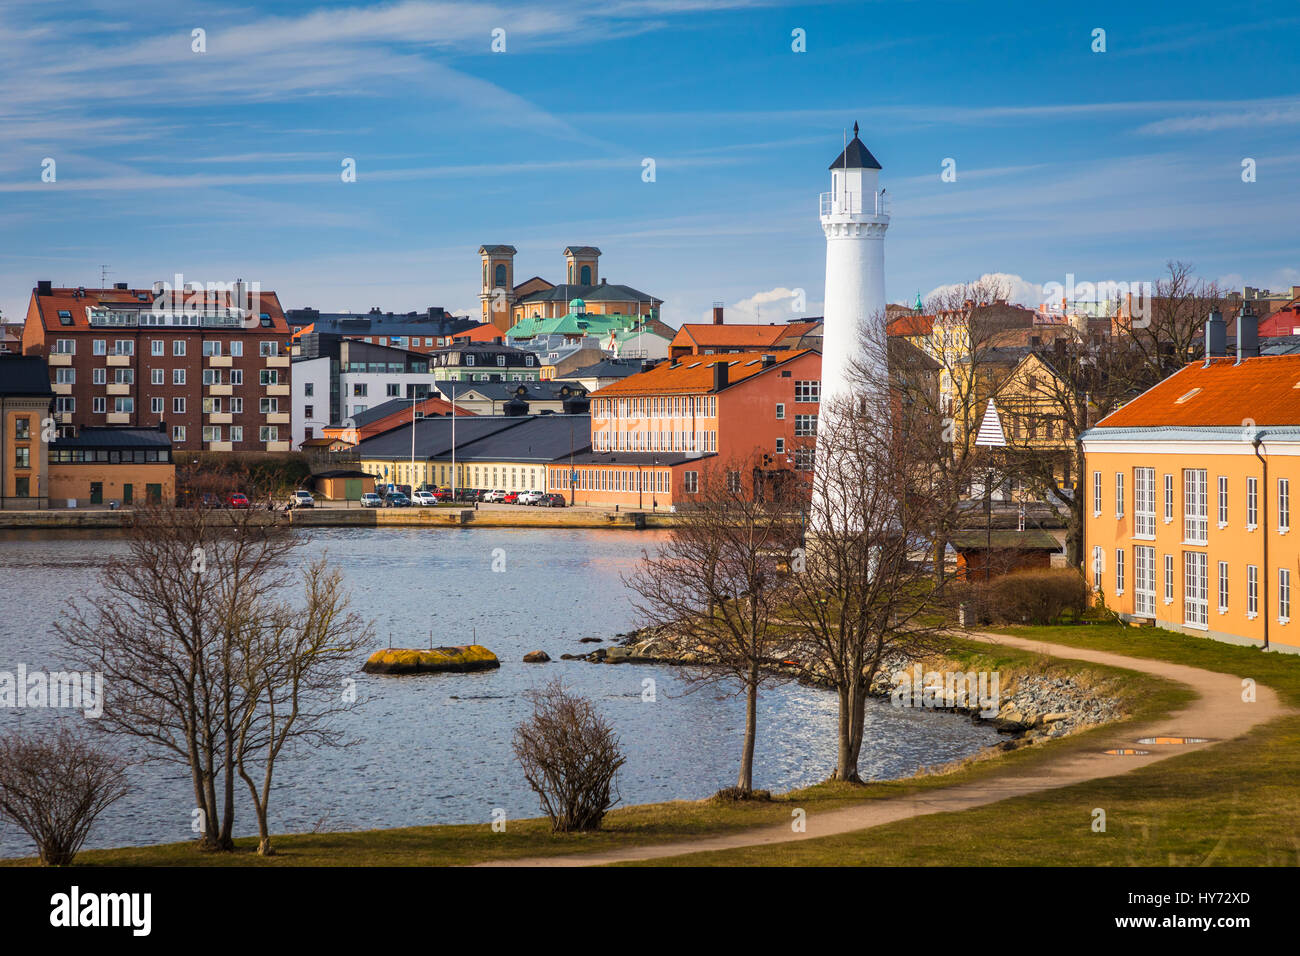 View of Karlskona, Sweden from Stumholmen island ..... Karlskrona is a locality and the seat of Karlskrona Municipality, - Stock Image